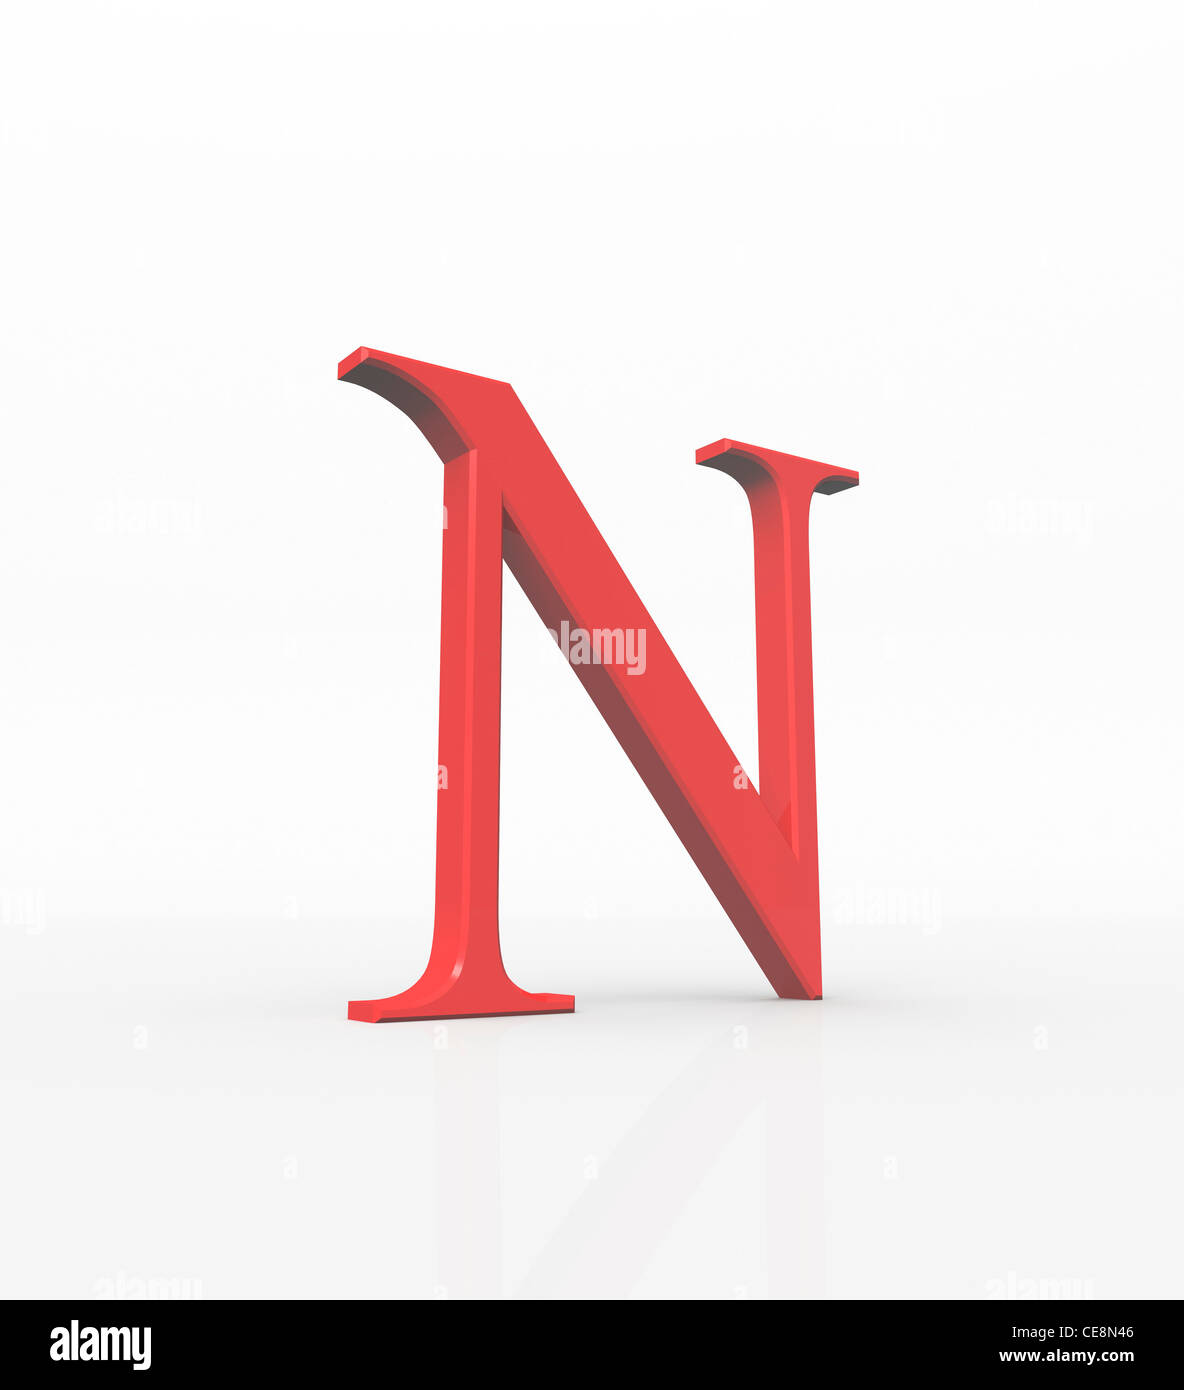 Nu 13th letter Greek alphabet In system Greek numerals it value 50